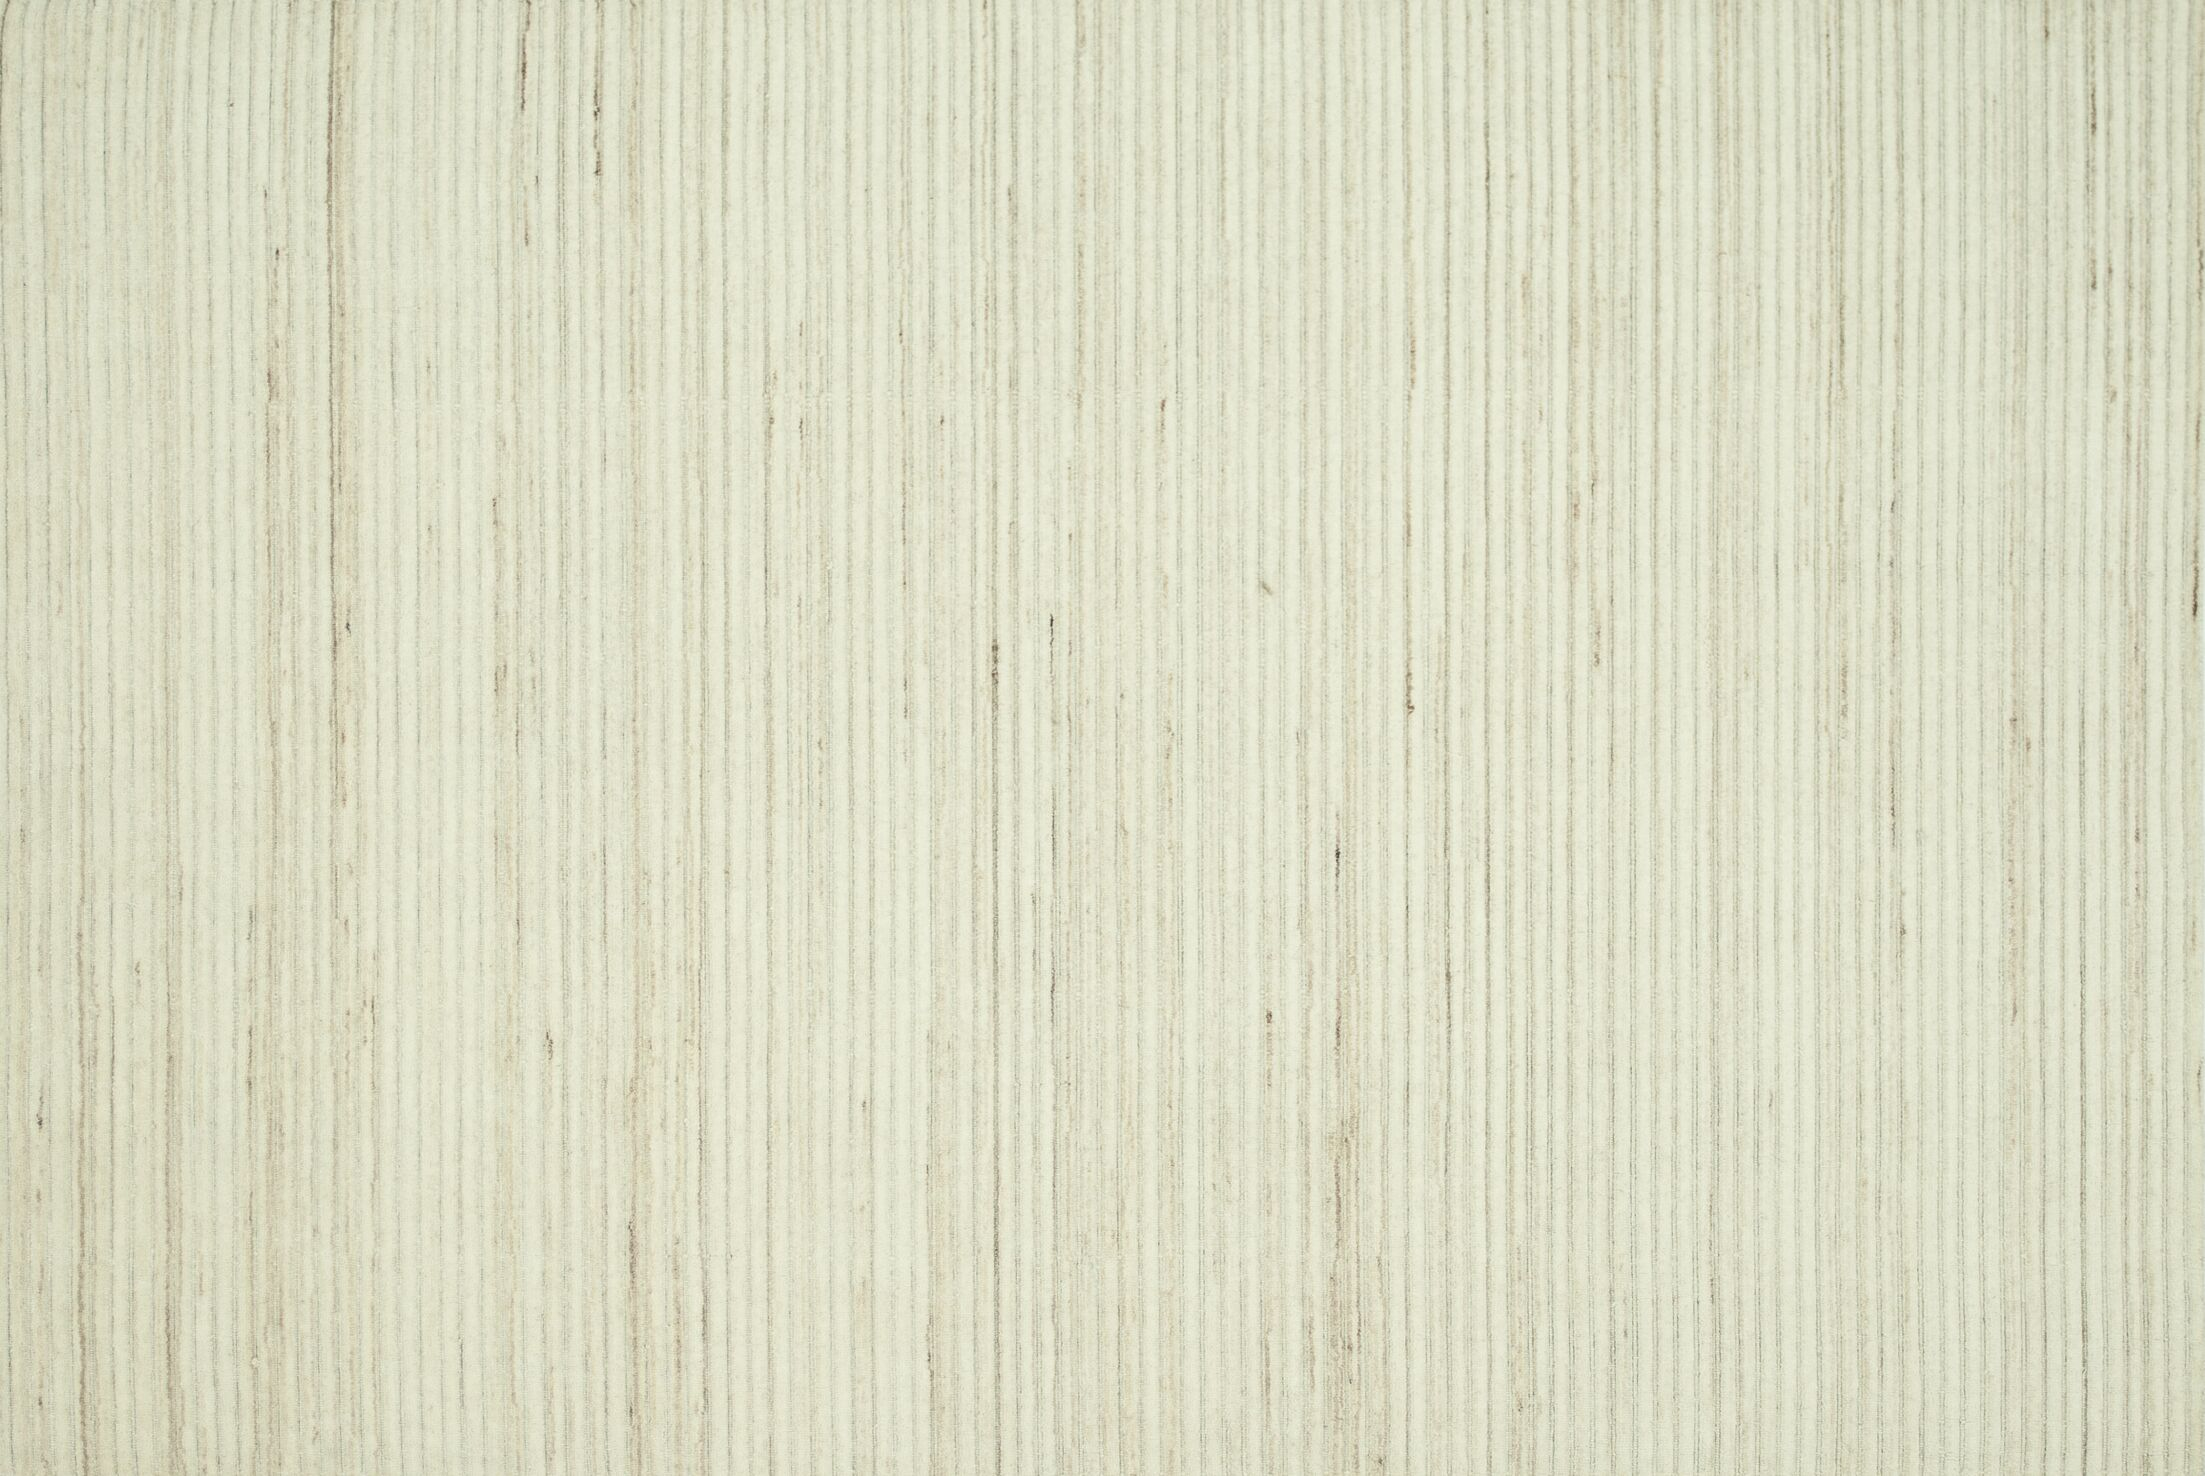 Souvenance Ivory Solid Area Rug Rug Size: Rectangle 5' x 7'6